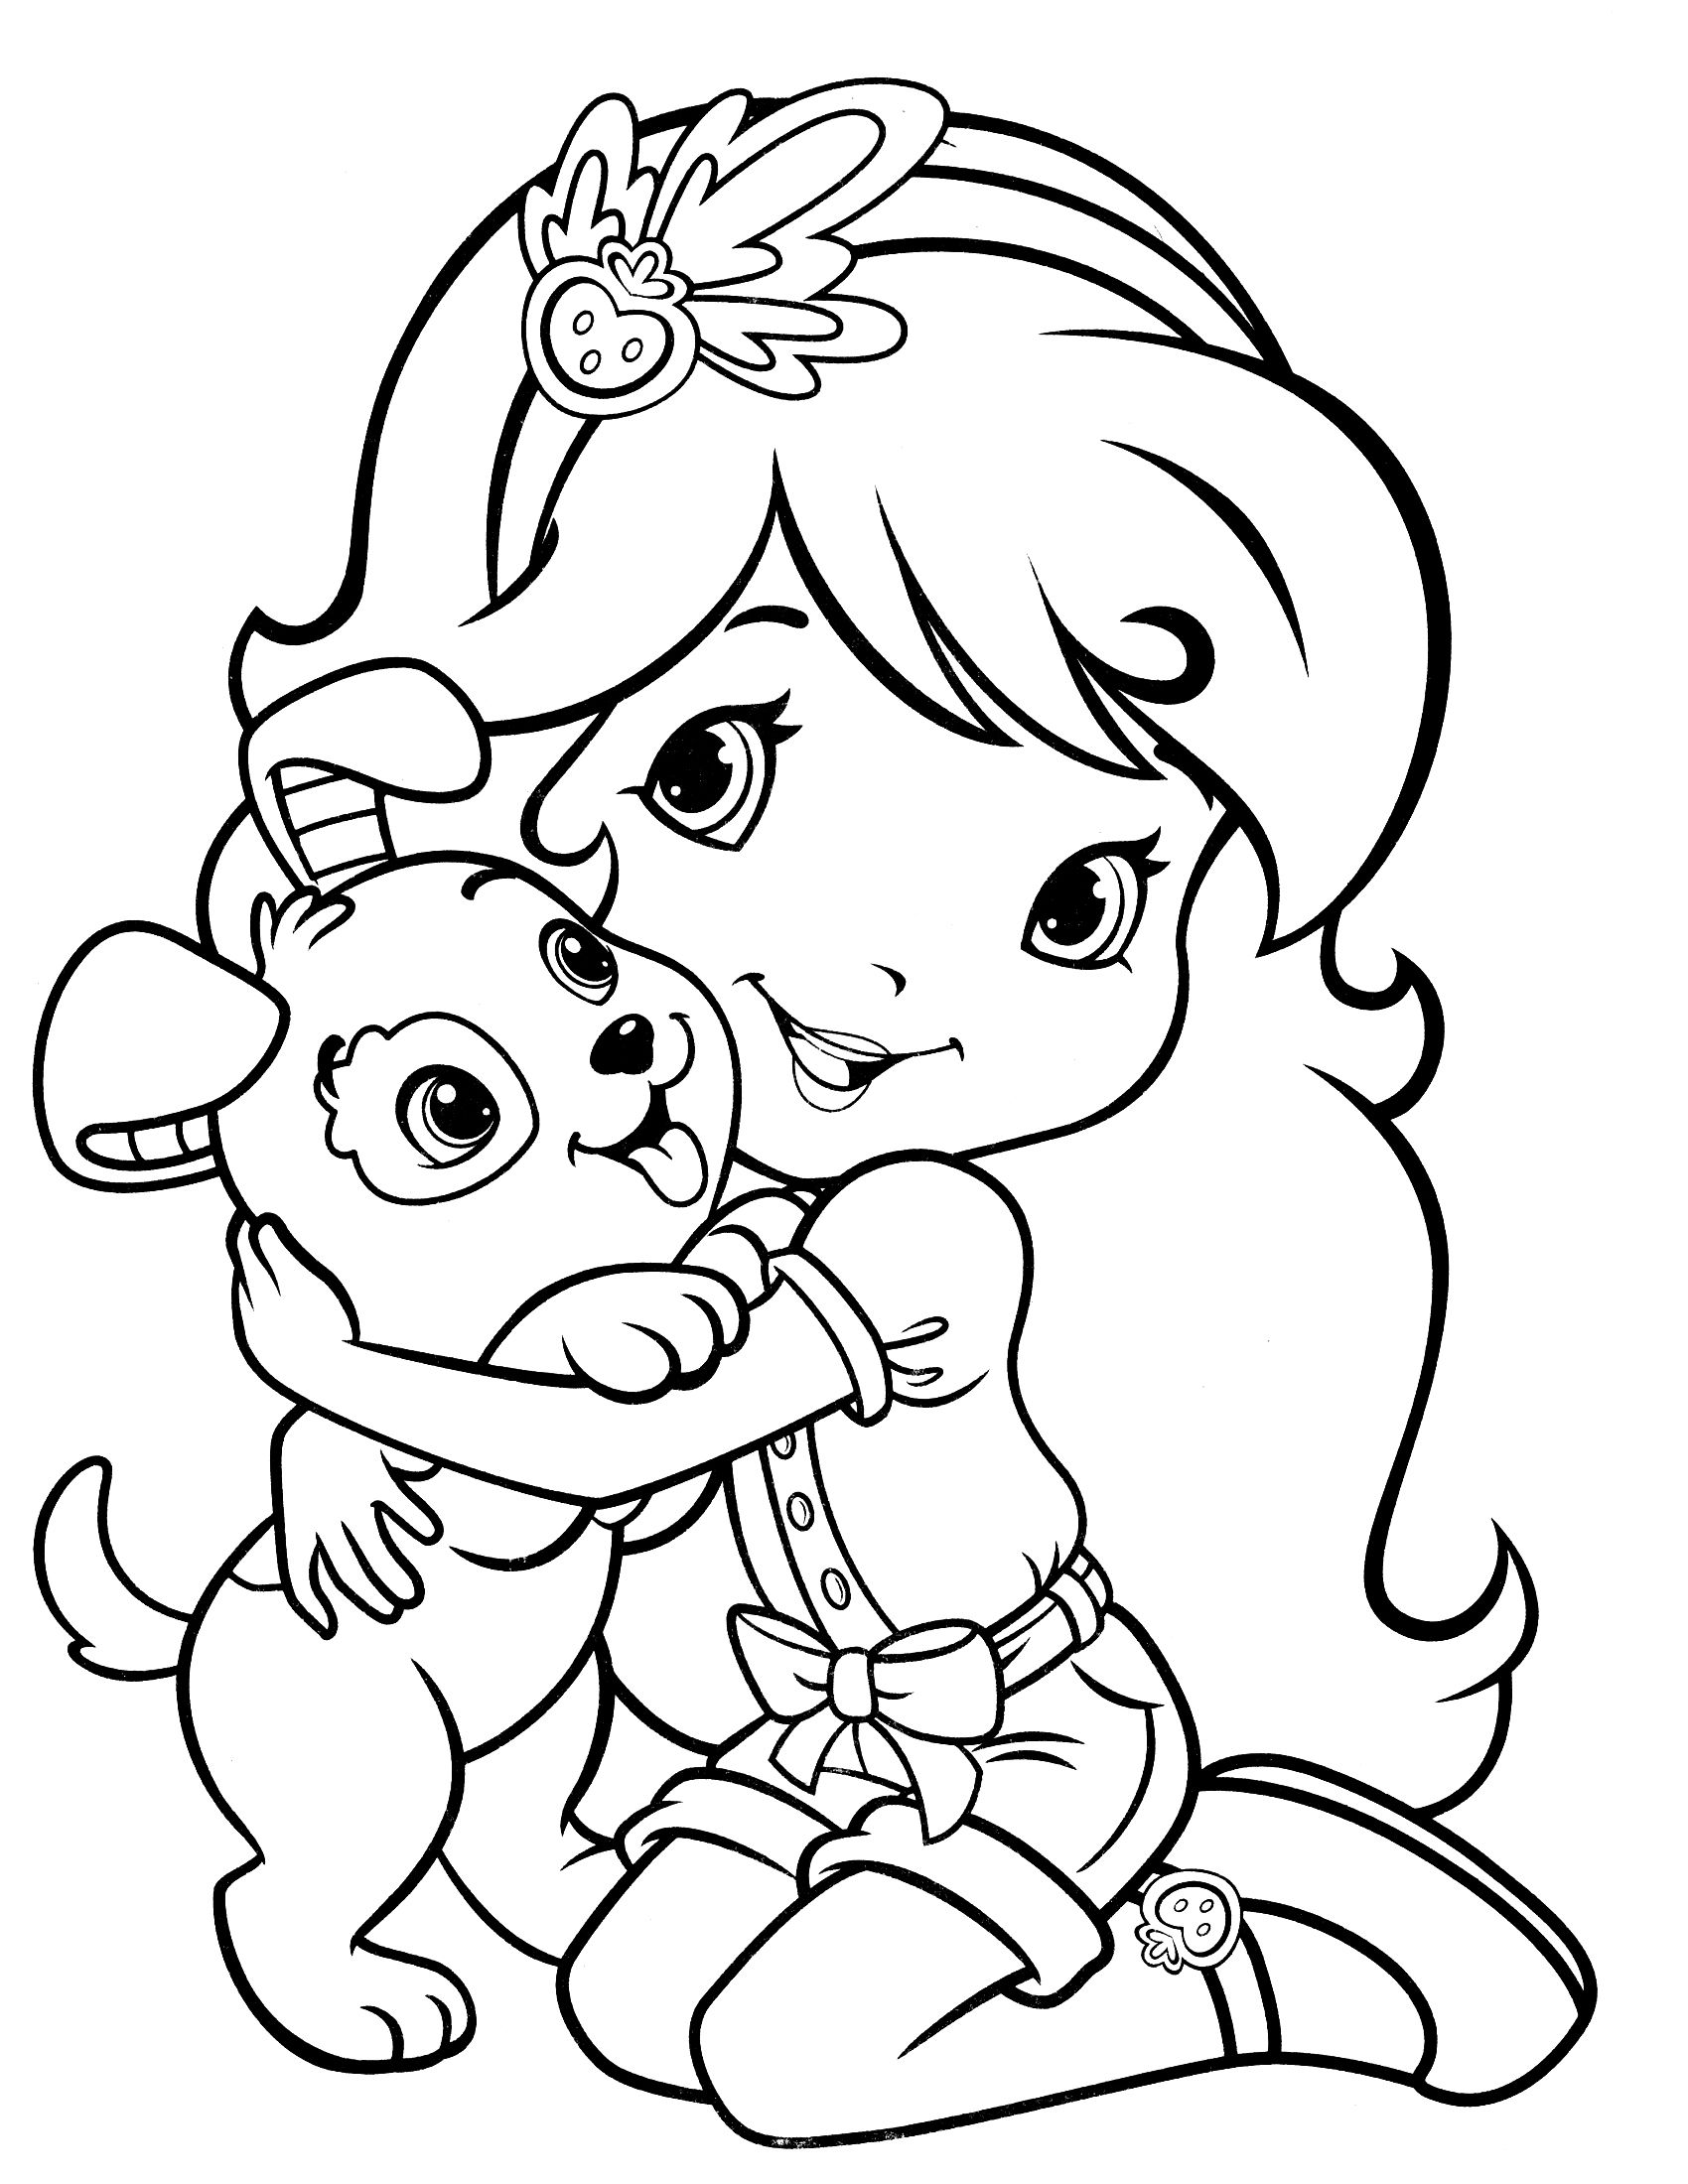 Strawberry Shortcake Coloring Pages Games Coloring Pages 2